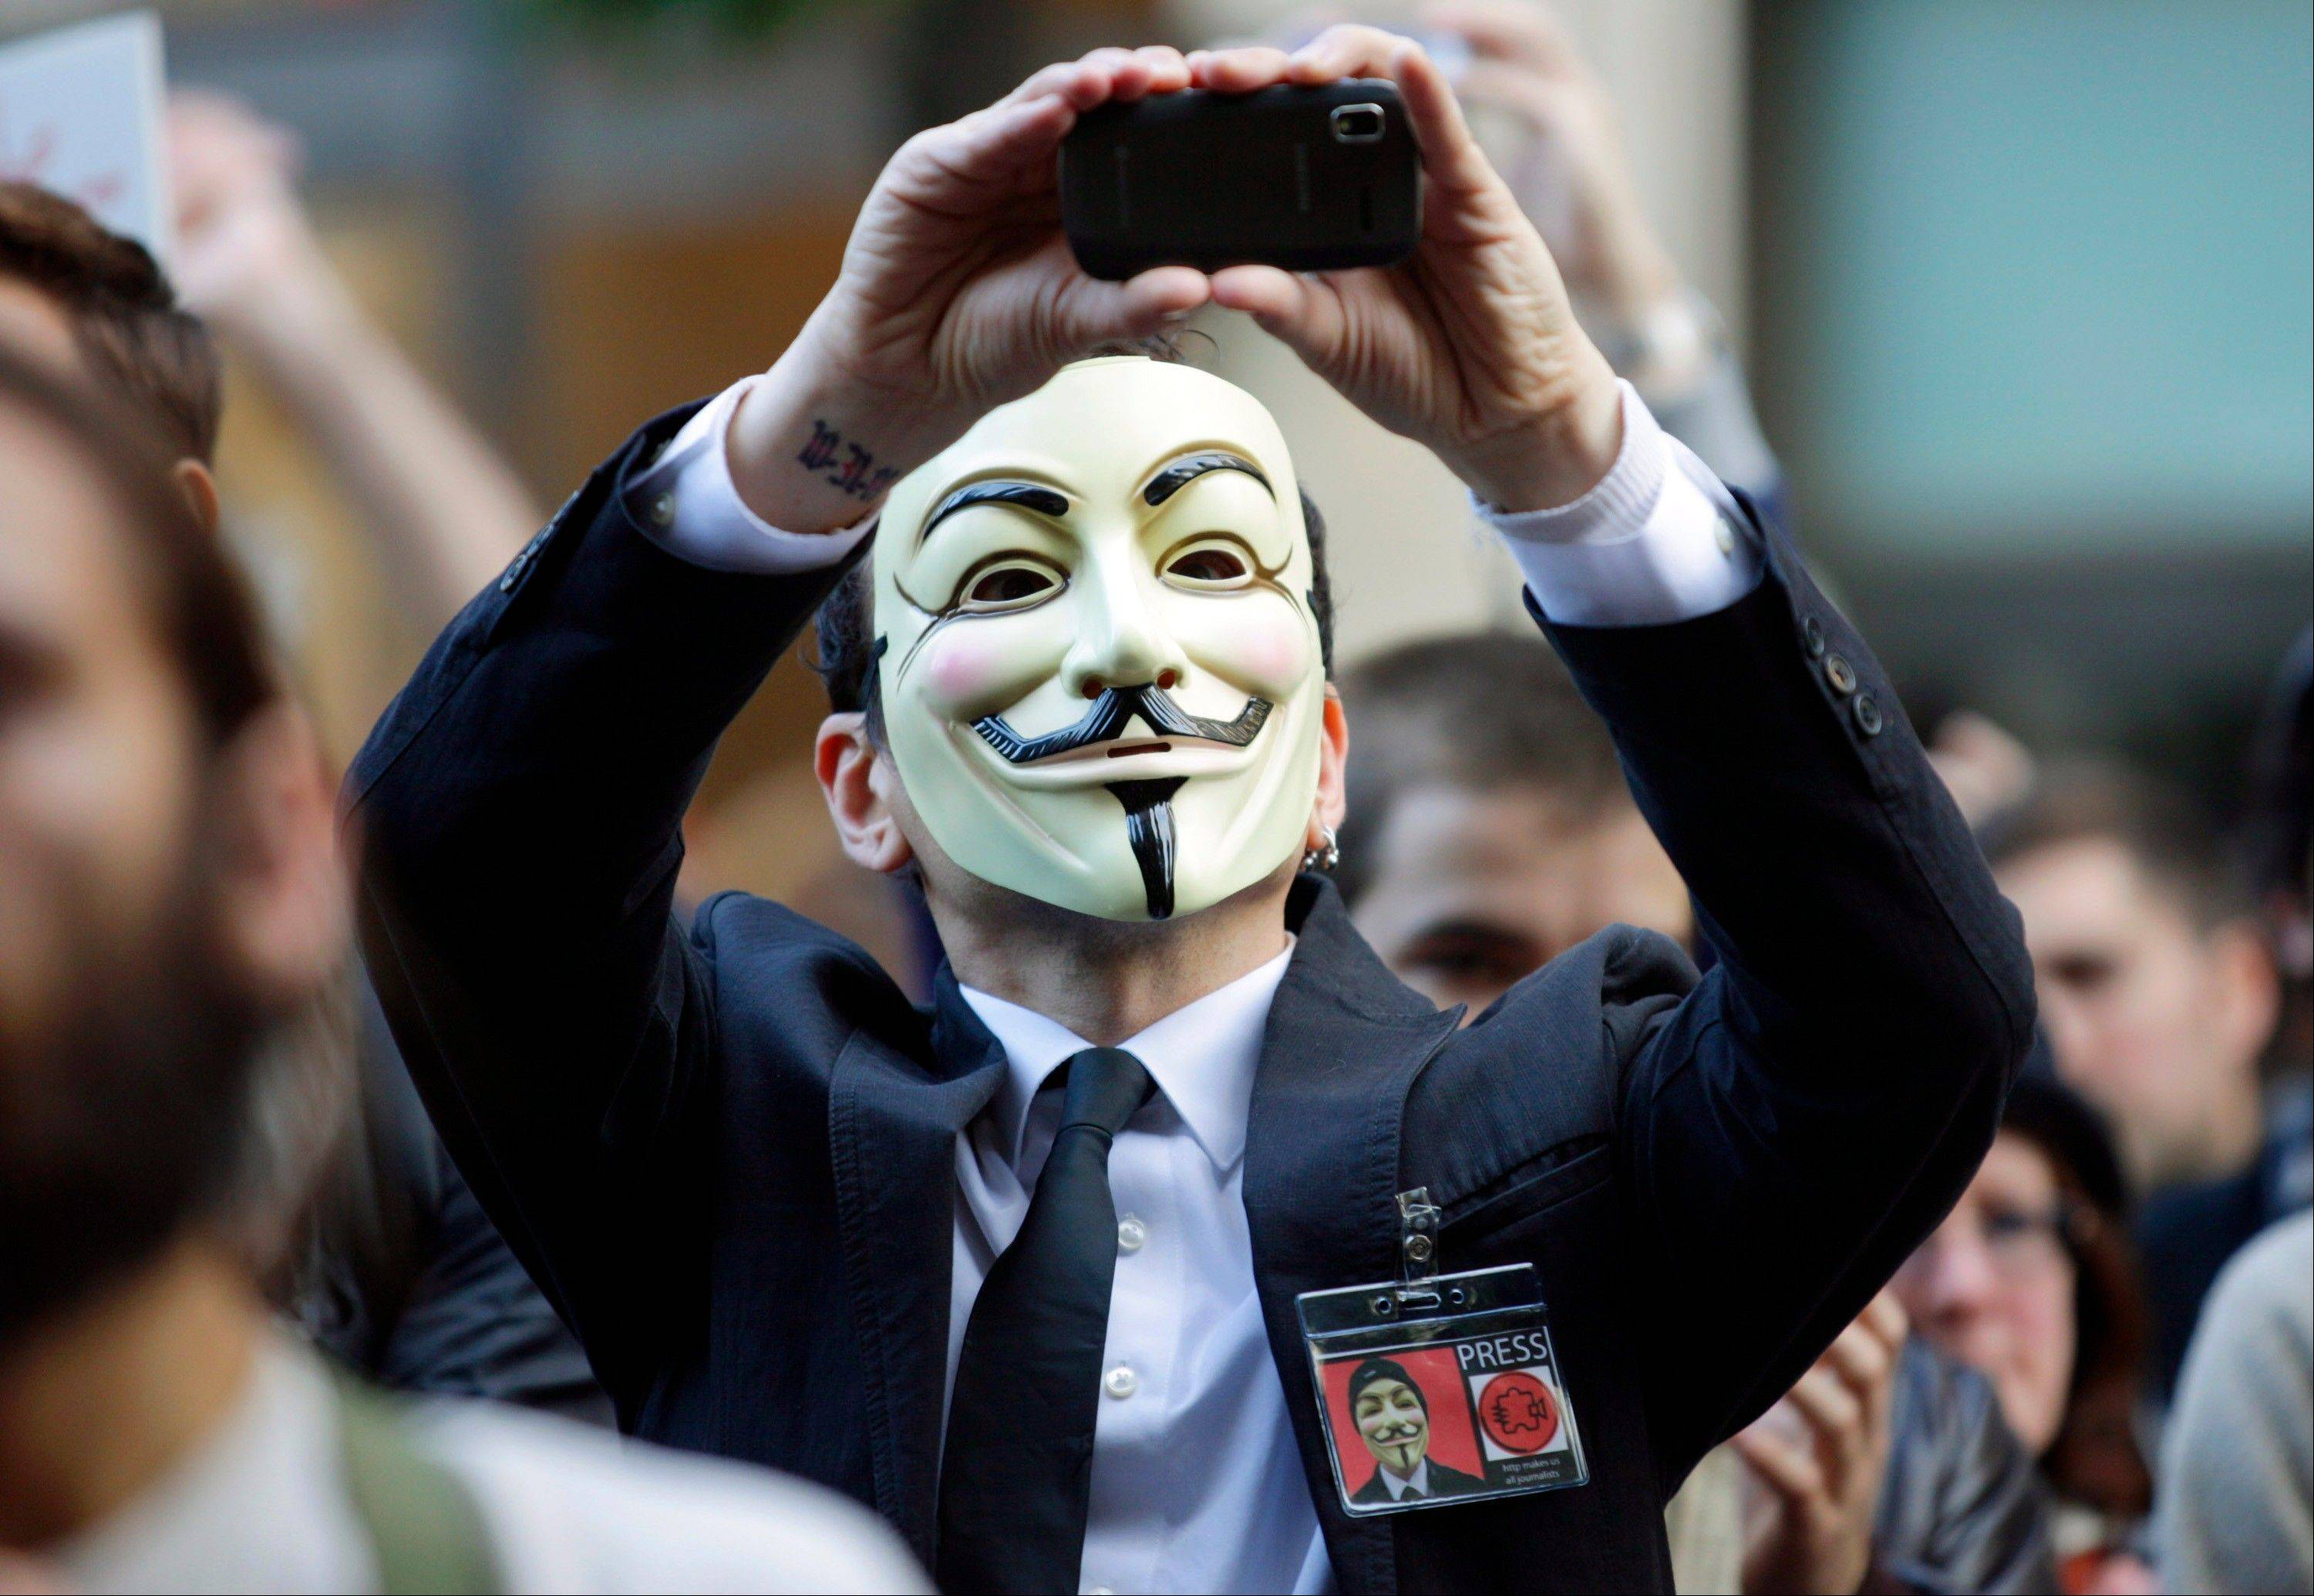 A protester with the �Occupy Seattle� movement wears a Guy Fawkes mask and takes a photo with a mobile phone as he demonstrates, in downtown Seattle. Television audiences across China watched an anarchist antihero rebel against a totalitarian government and persuade the people to rule themselves.